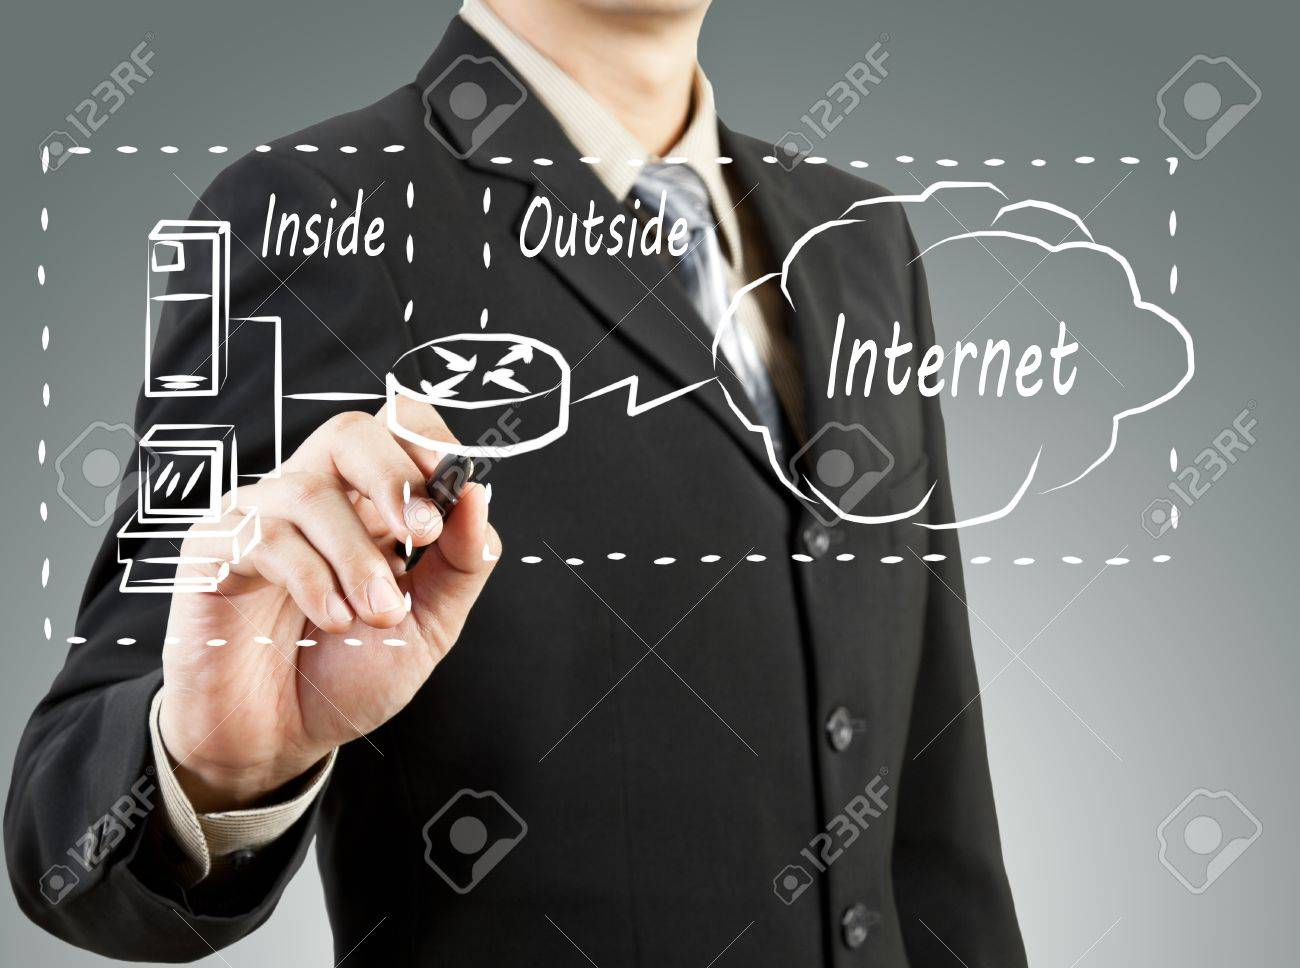 Business Man Draw Network Diagram Basic Concept Stock Photo ...